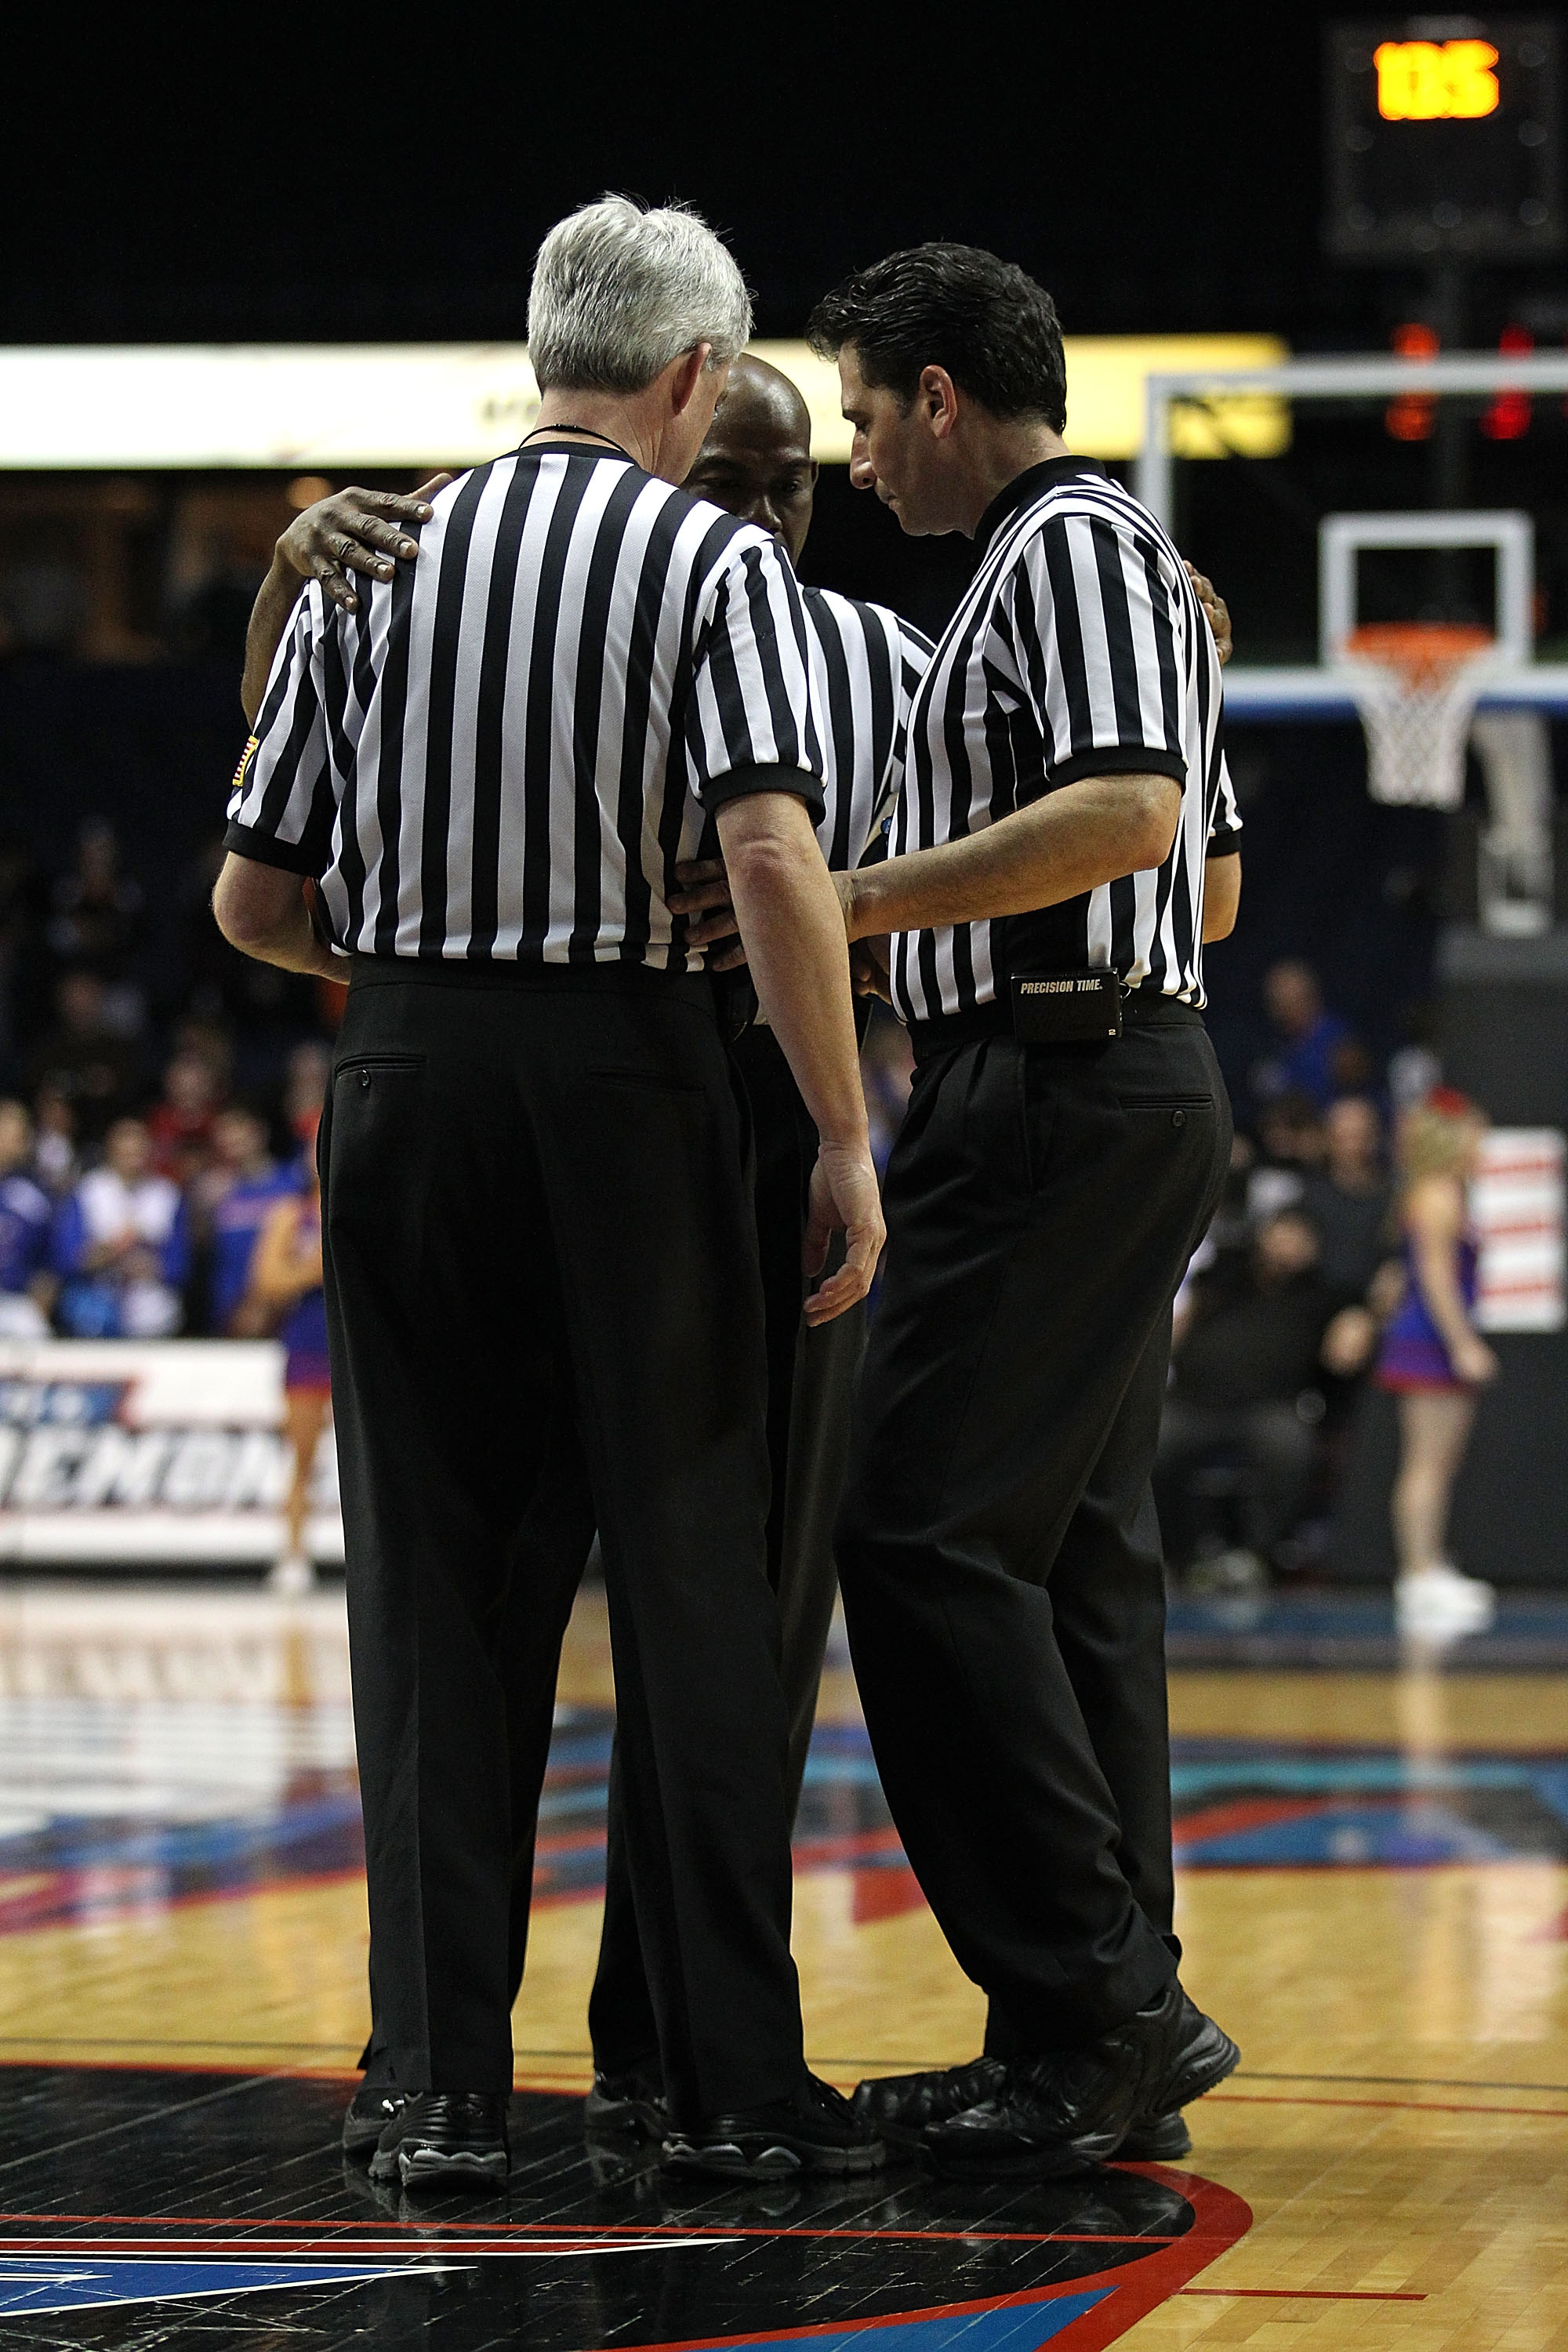 amateur-referee-basketball-lehigh-valley